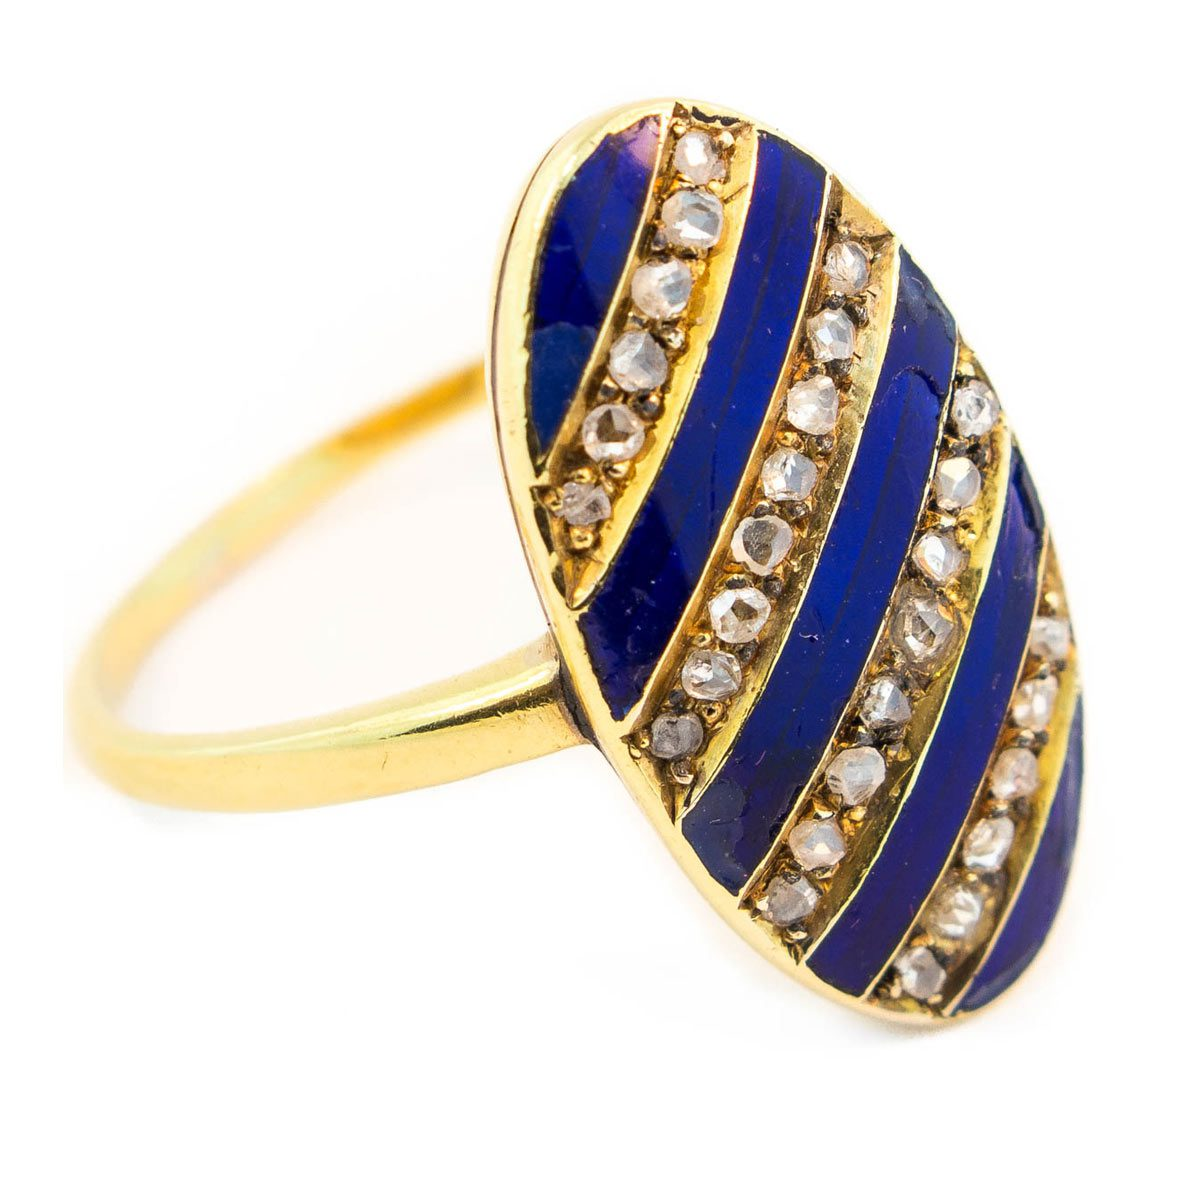 Antique Enamel and Diamond Ring